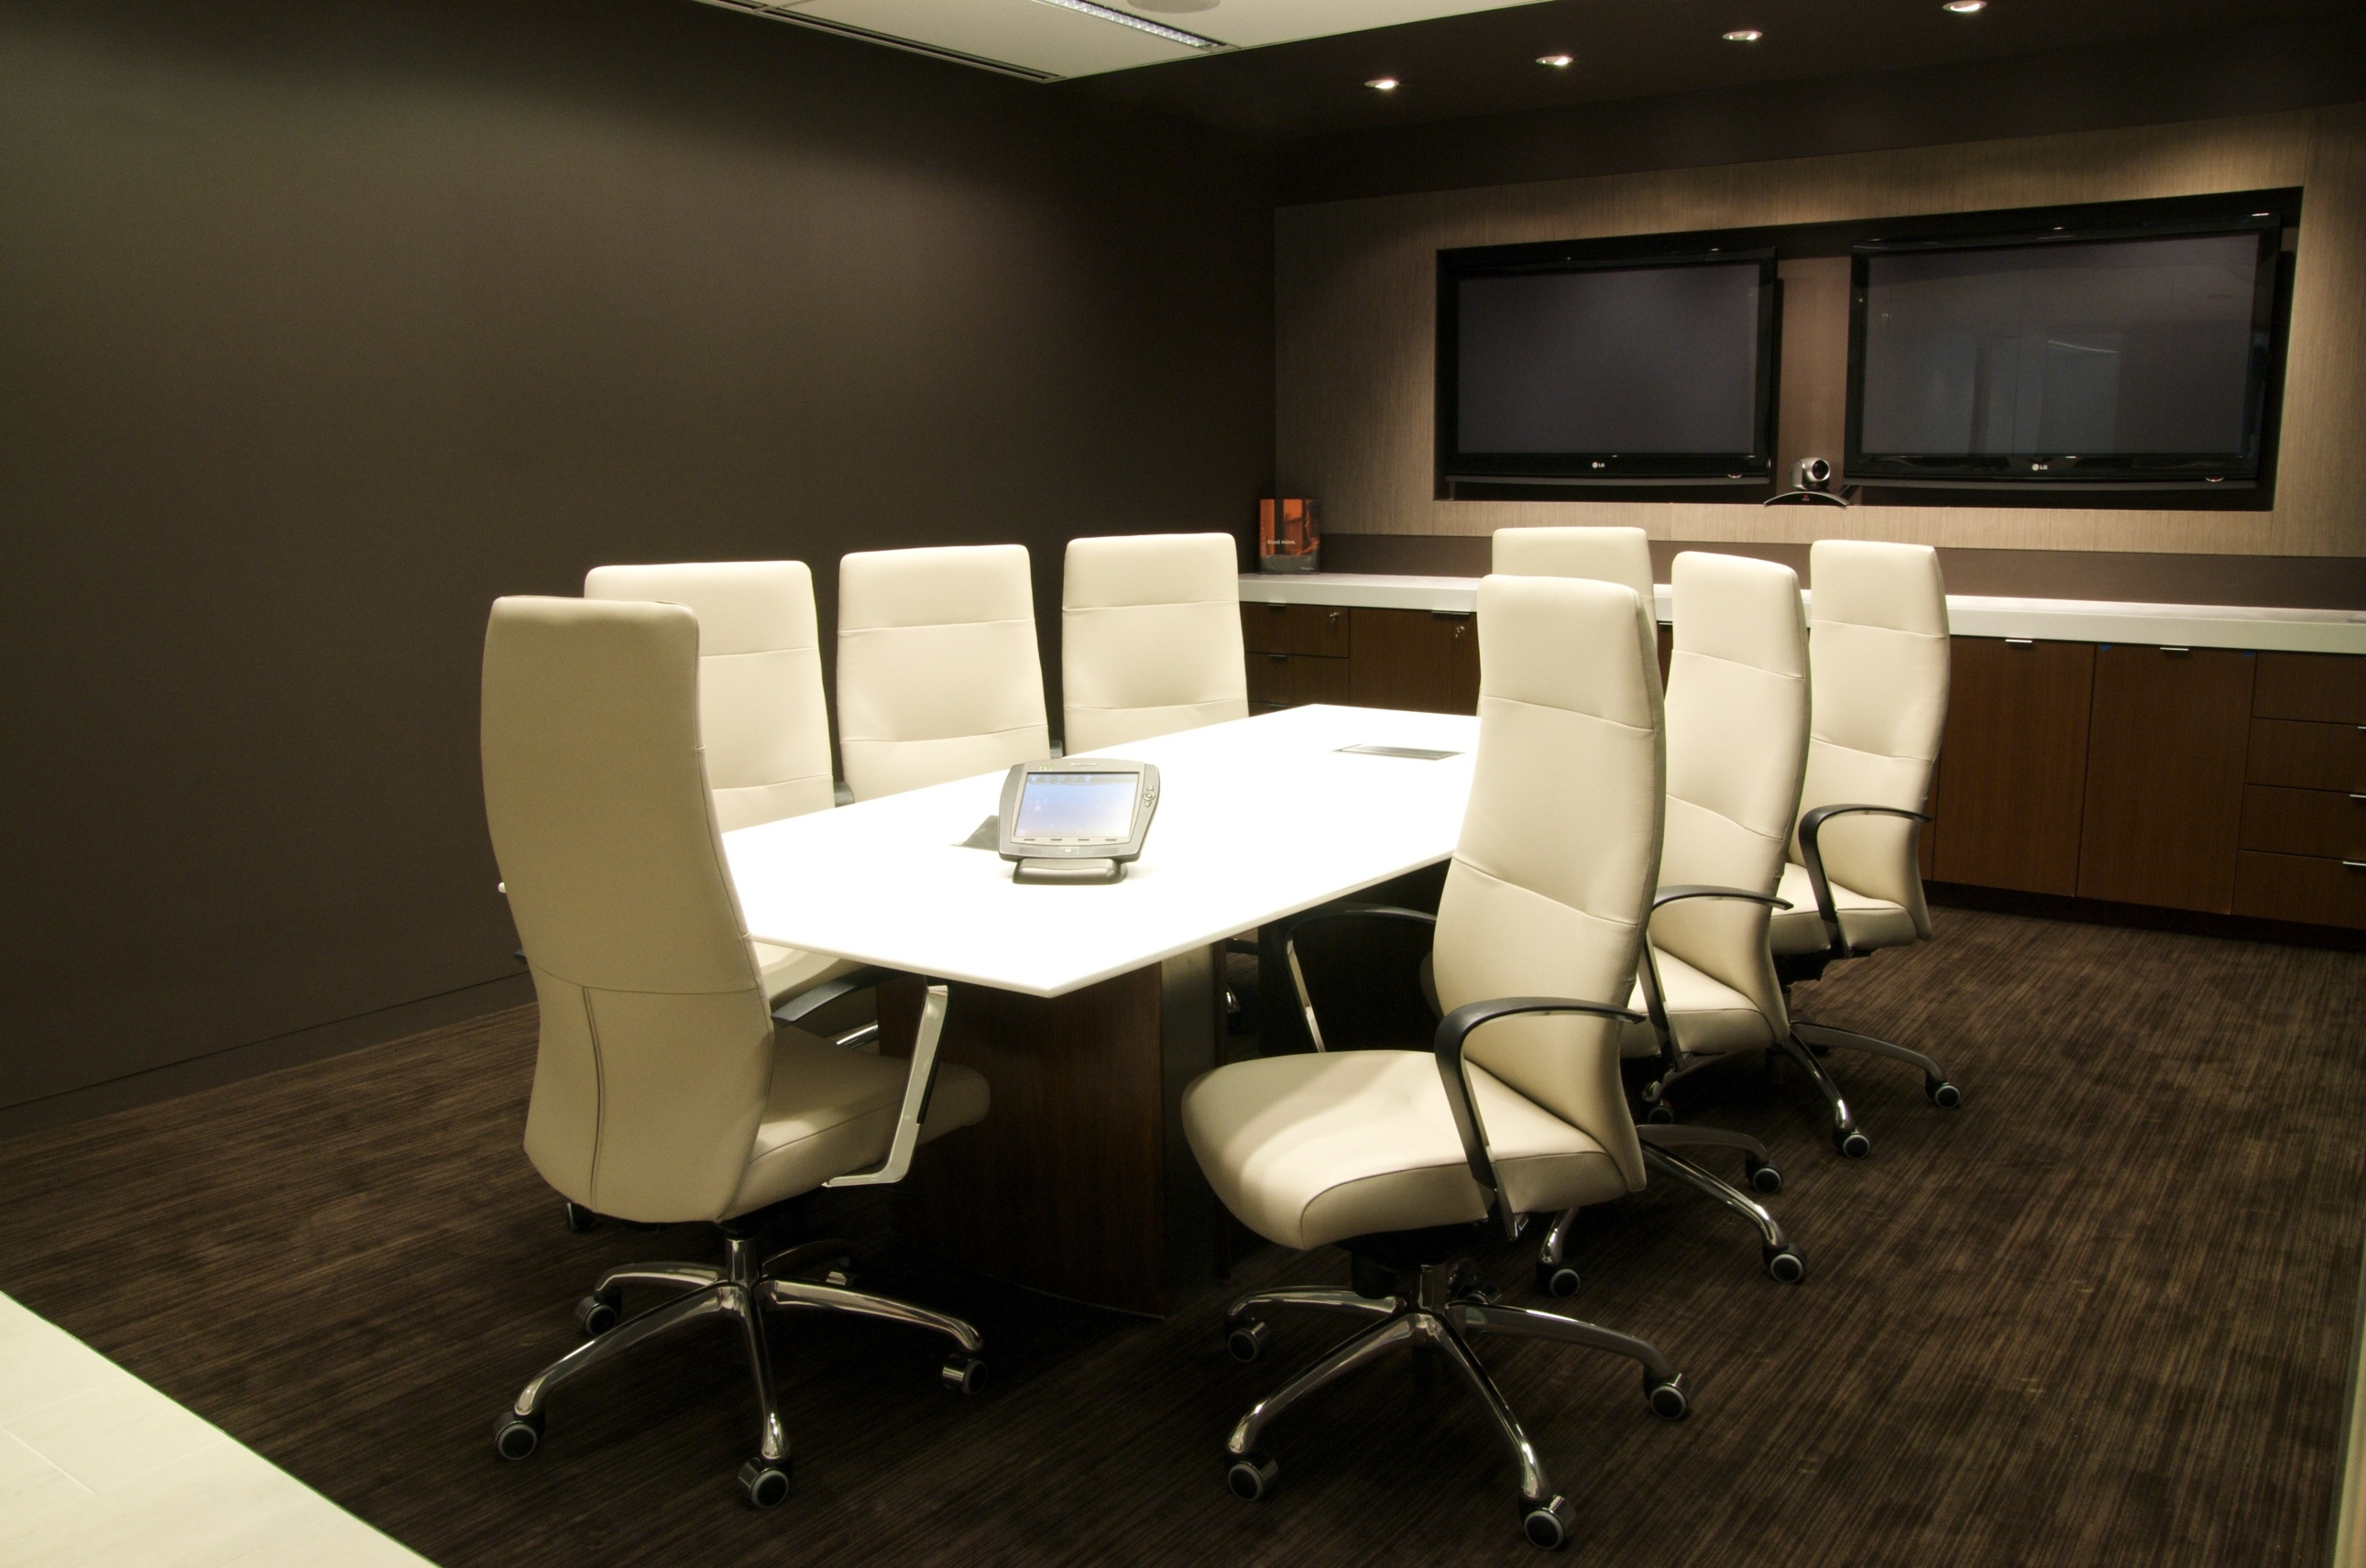 office conference room. TOP VENUES Office Conference Room